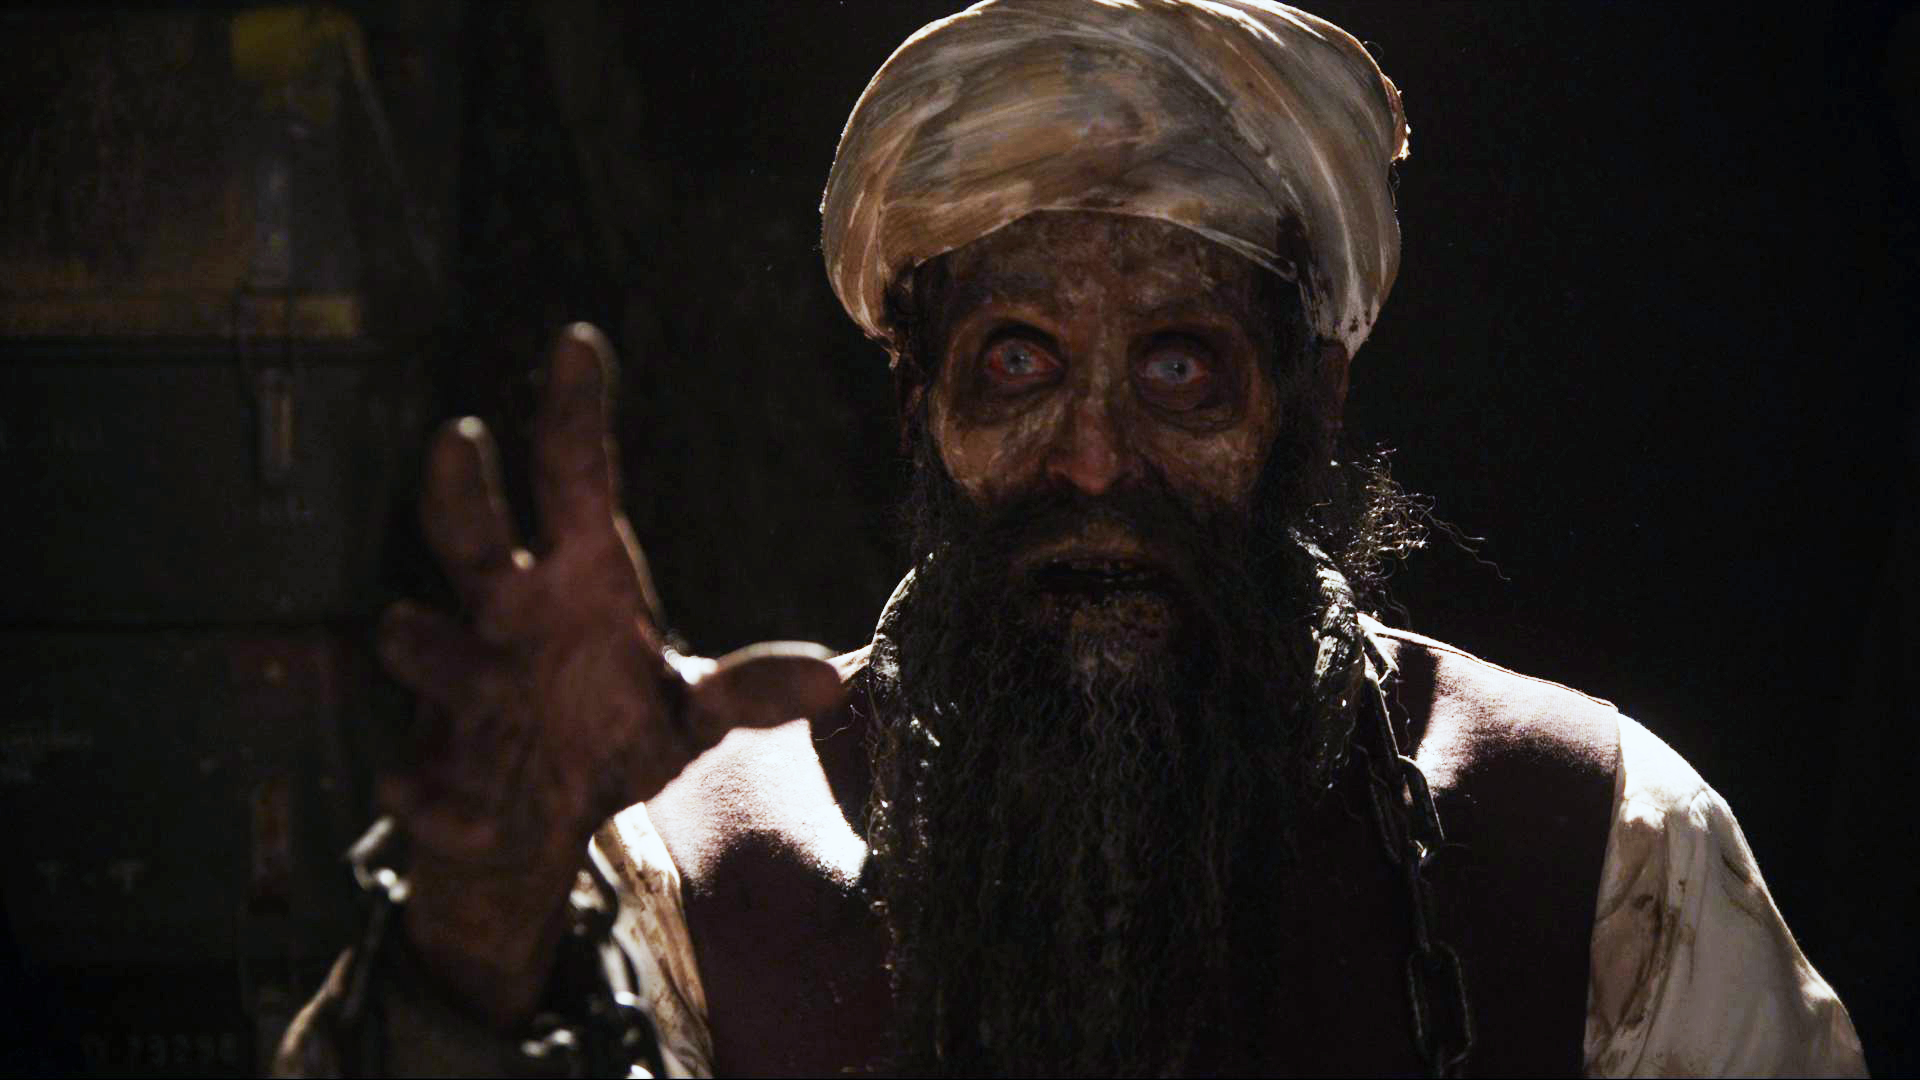 Osama bin Laden as a zombie in Osombie (2012)